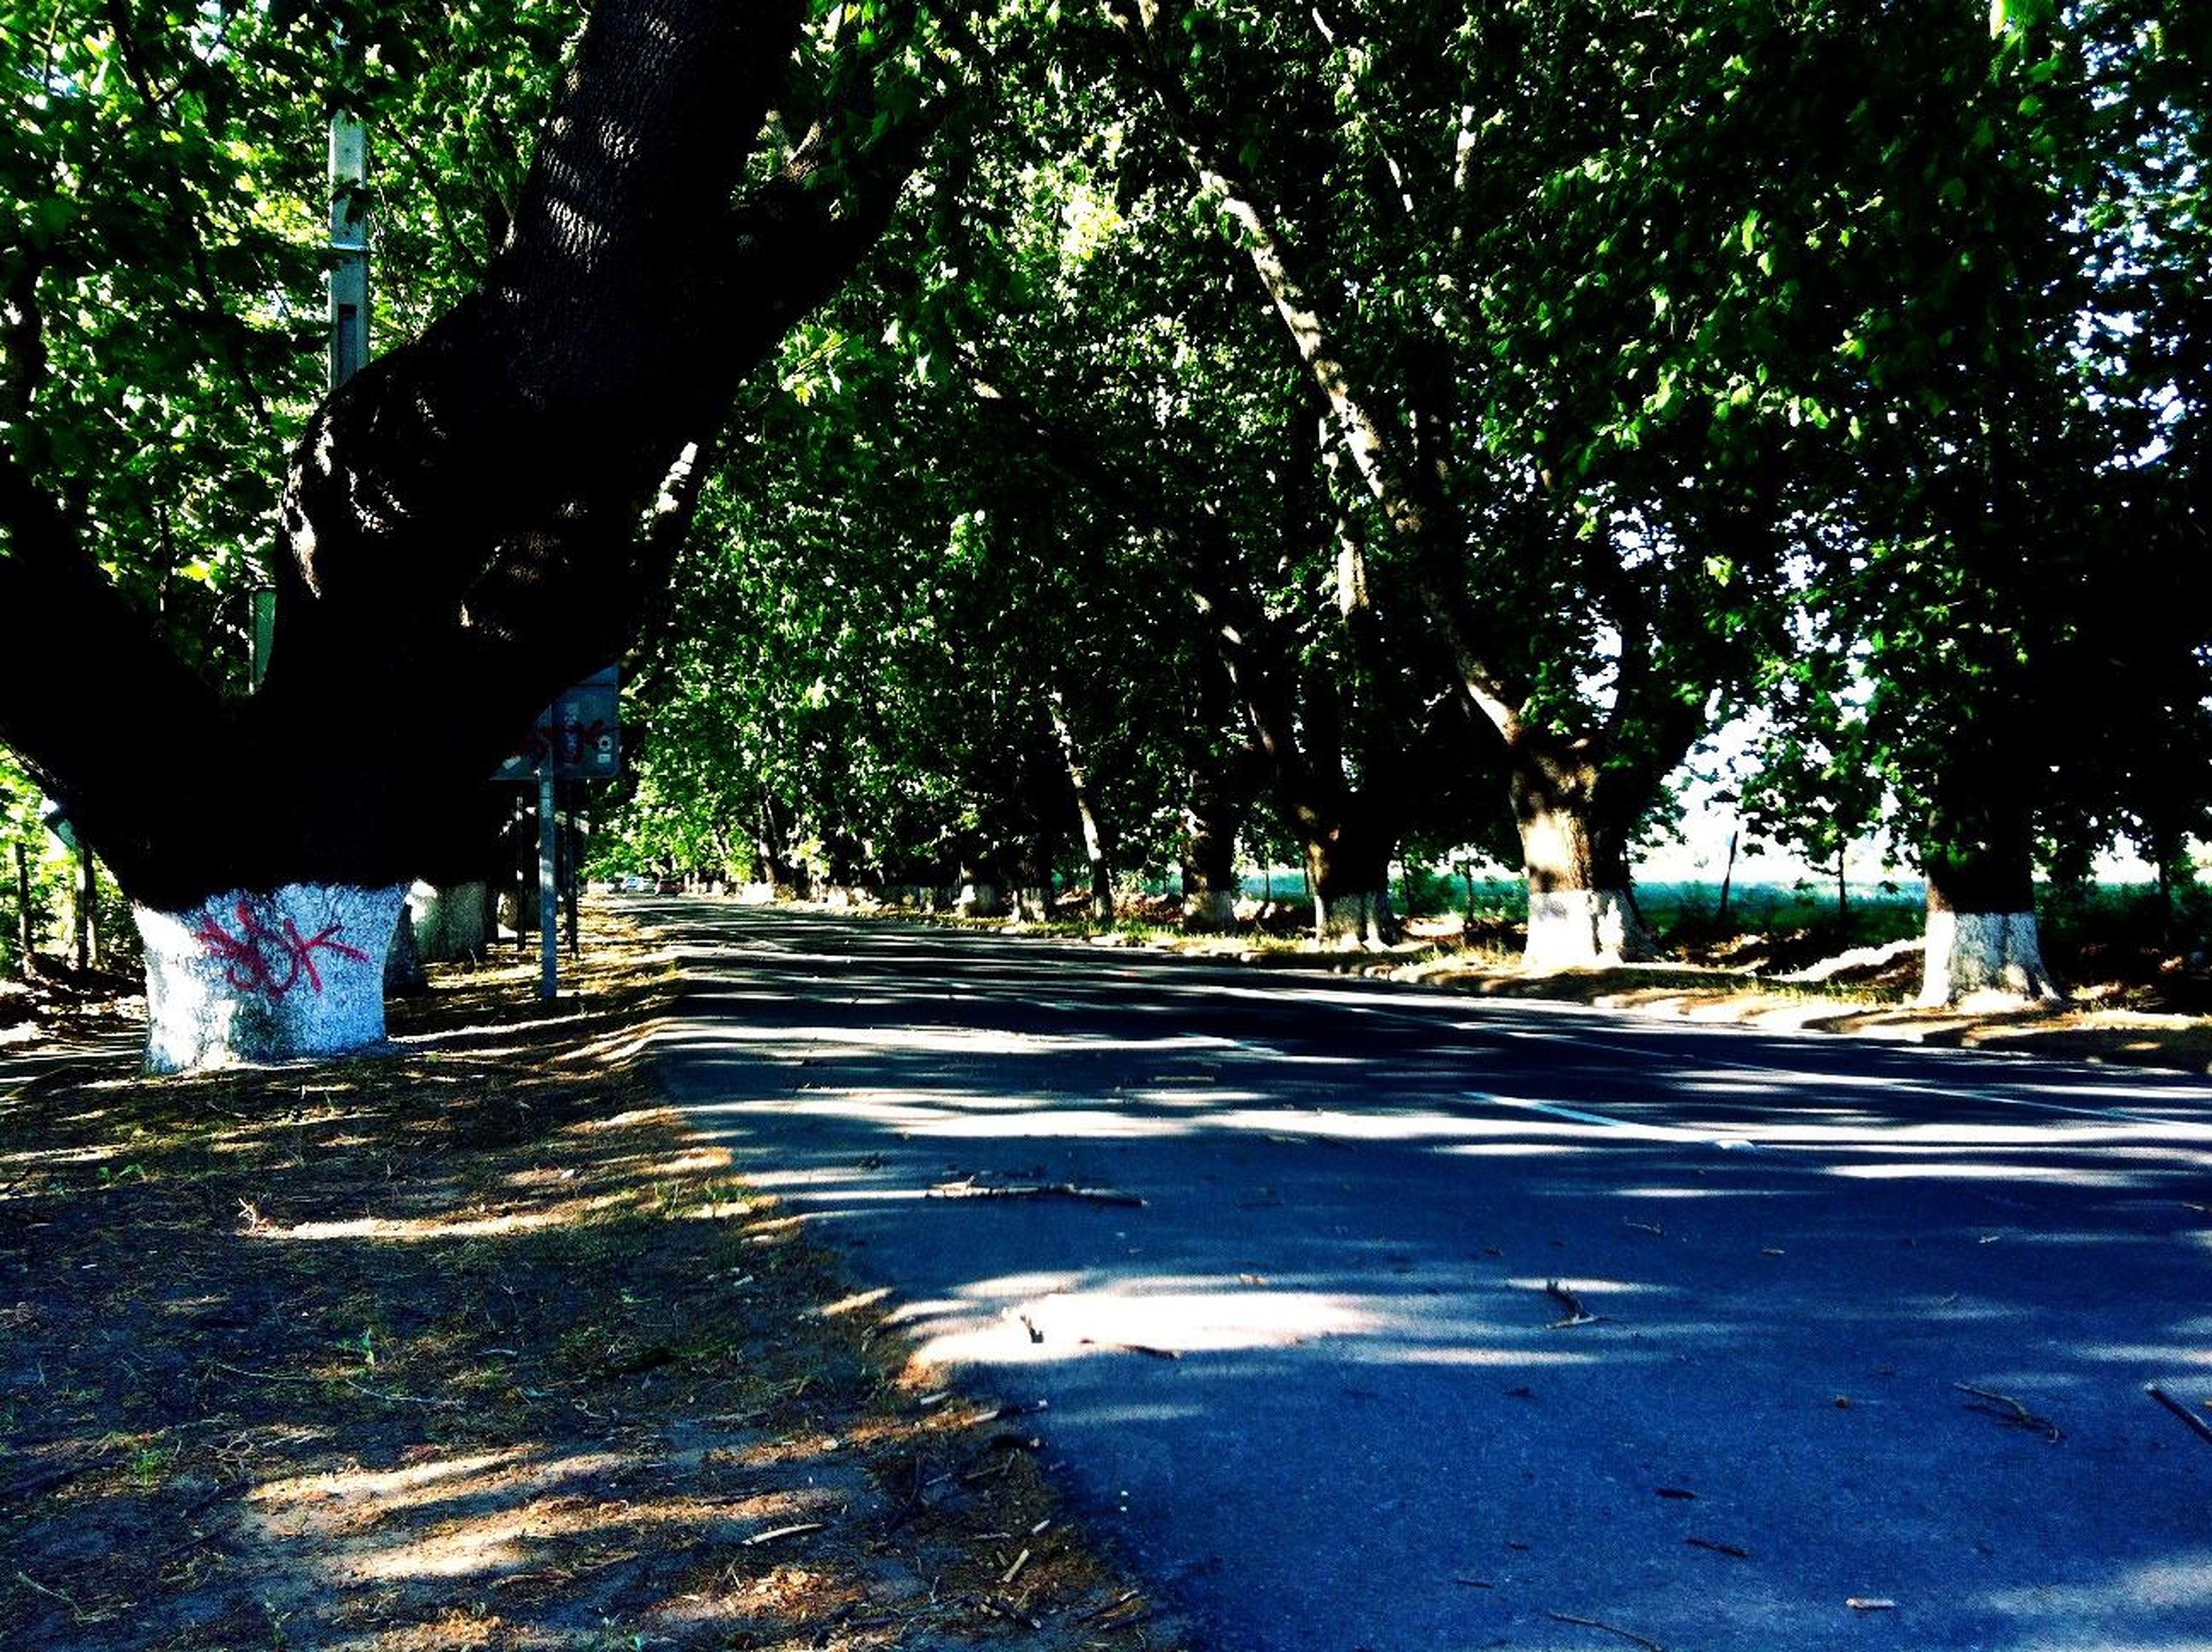 tree, the way forward, transportation, road, diminishing perspective, tree trunk, street, treelined, vanishing point, empty road, empty, road marking, shadow, sunlight, growth, tranquility, asphalt, footpath, nature, country road